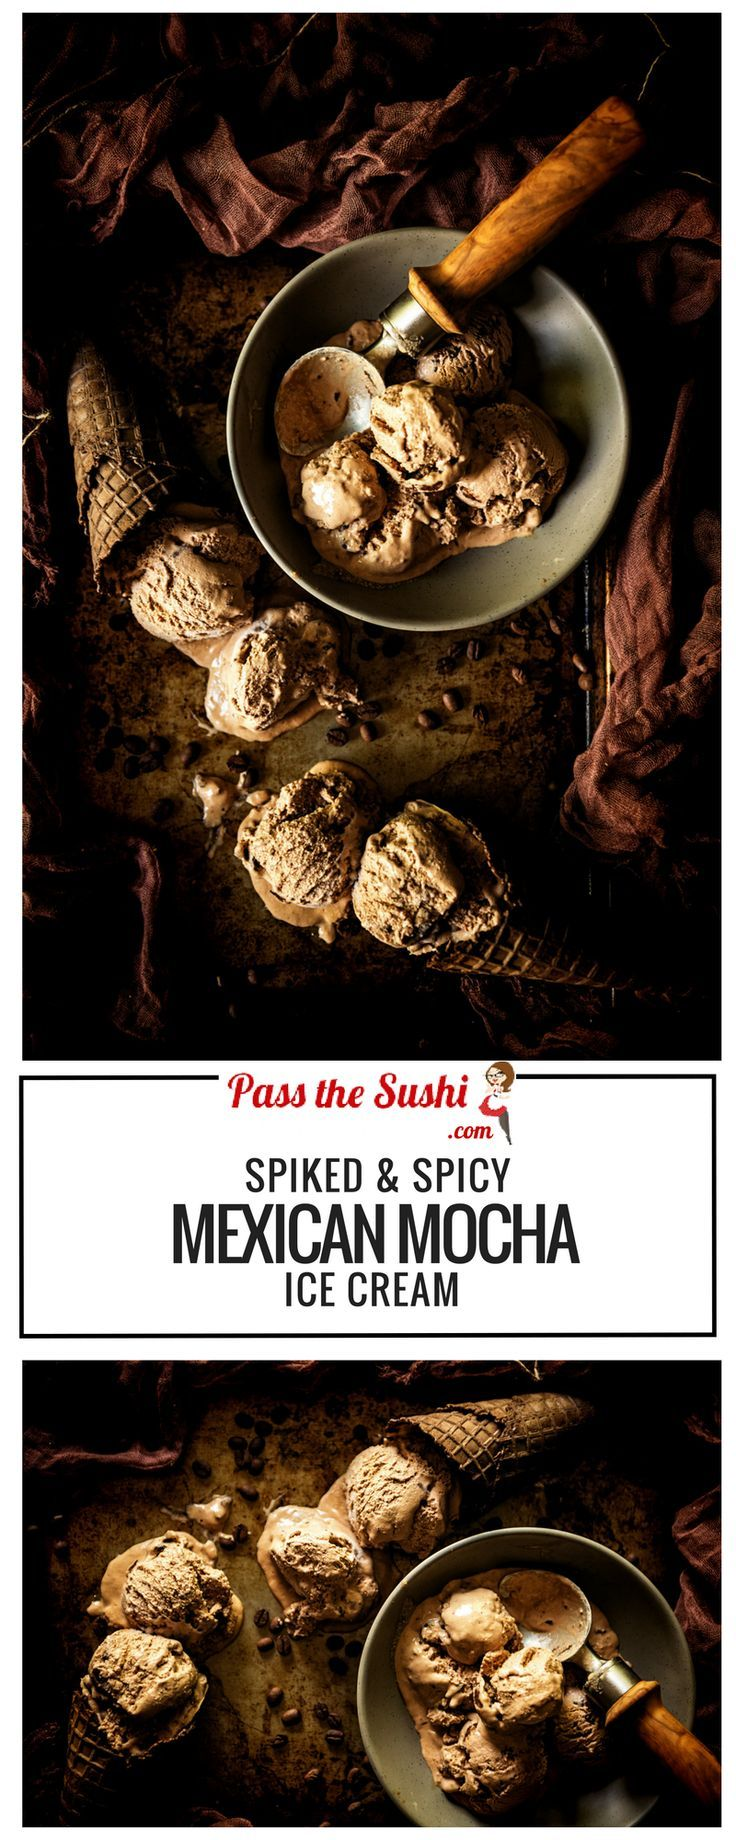 Spiked & Spicy Mexican Mocha Ice Cream - A smooth mocha ice cream with spike…